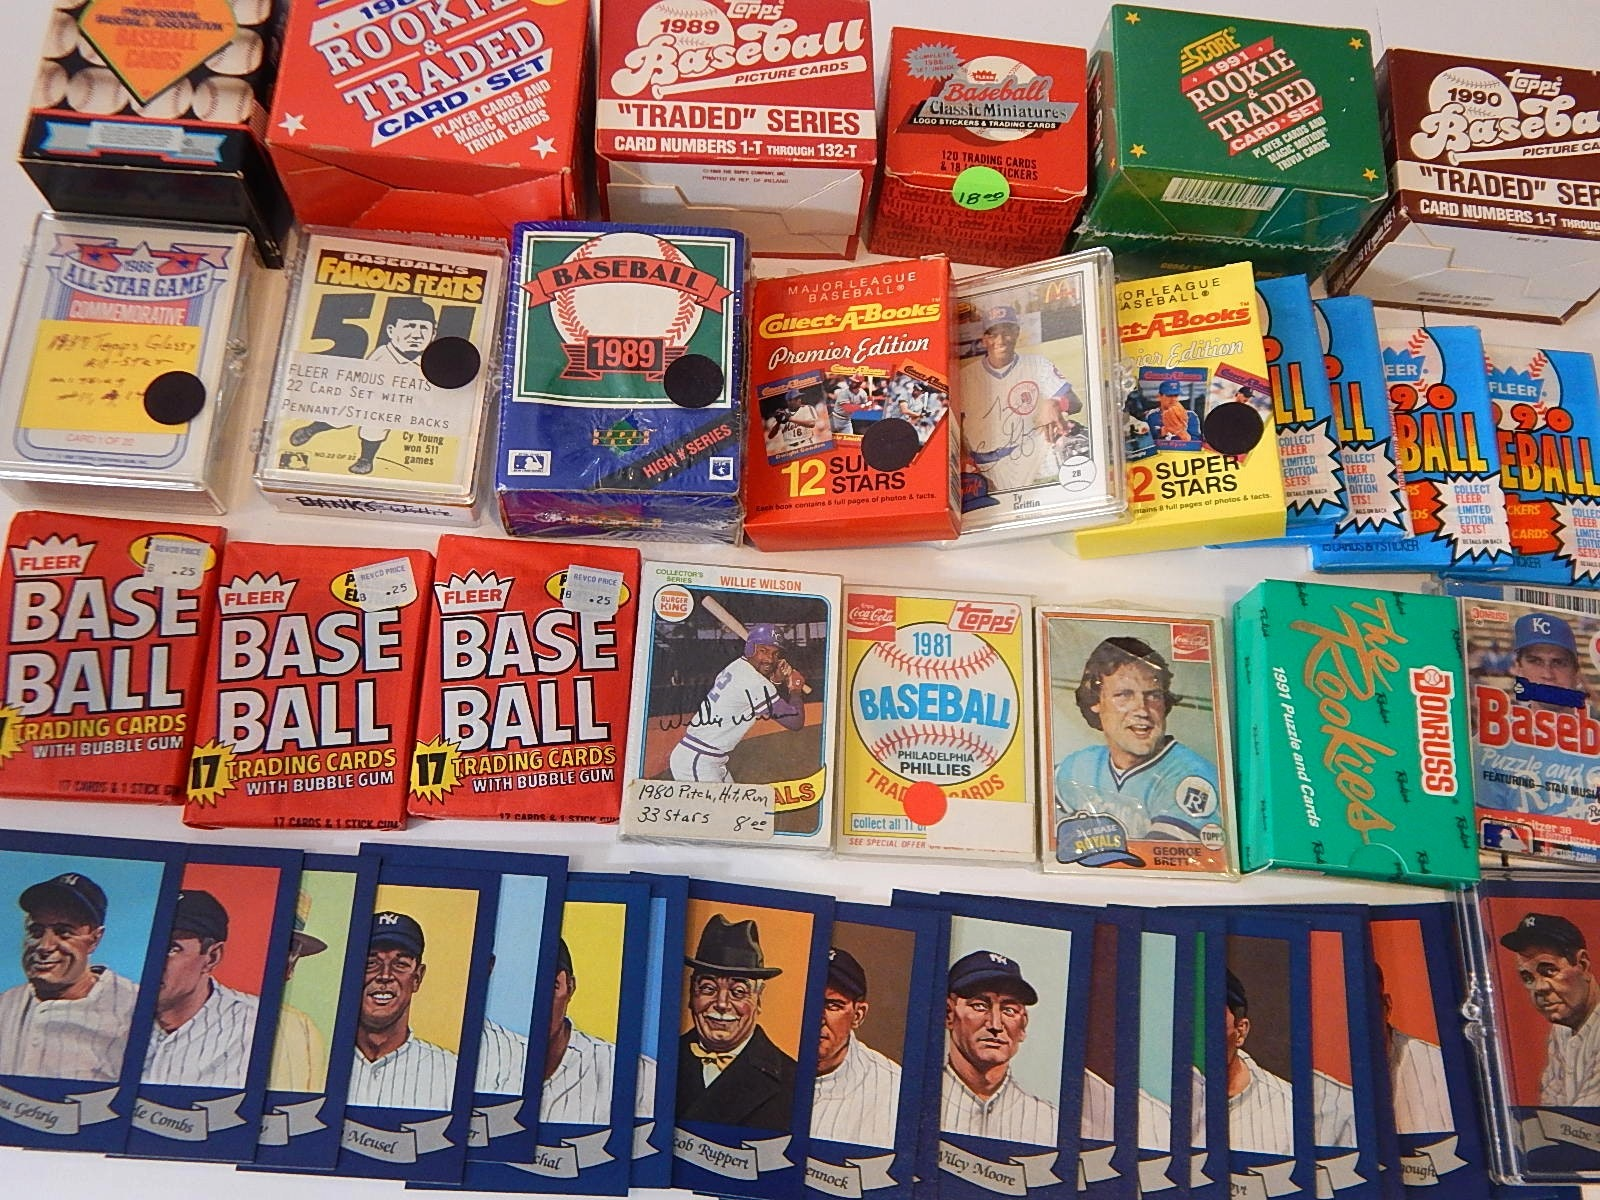 Collection of Baseball Sets, Wax Packs from 1980s and 1990s